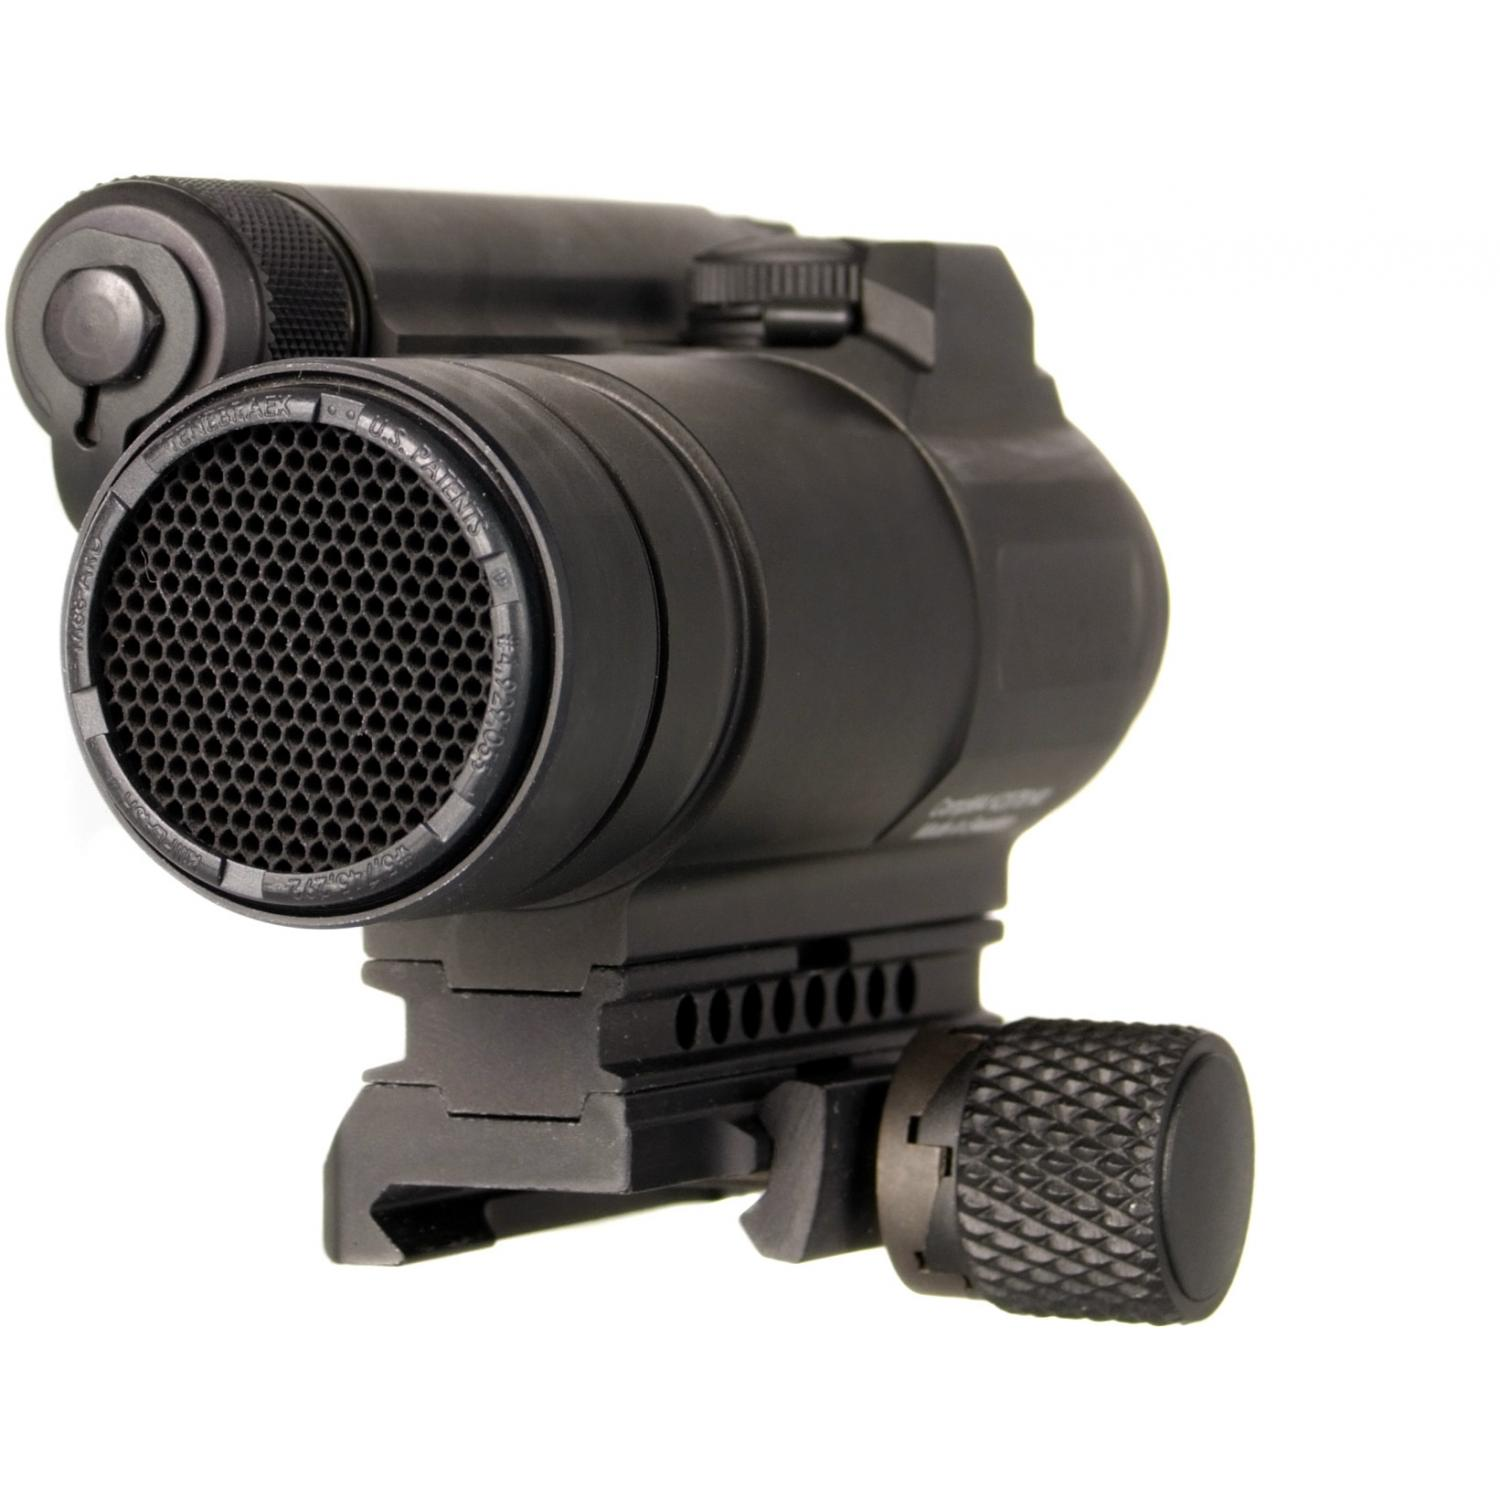 Aimpoint Compm4 Red Dot 2 Moa Sight With Mount - Black - 11972